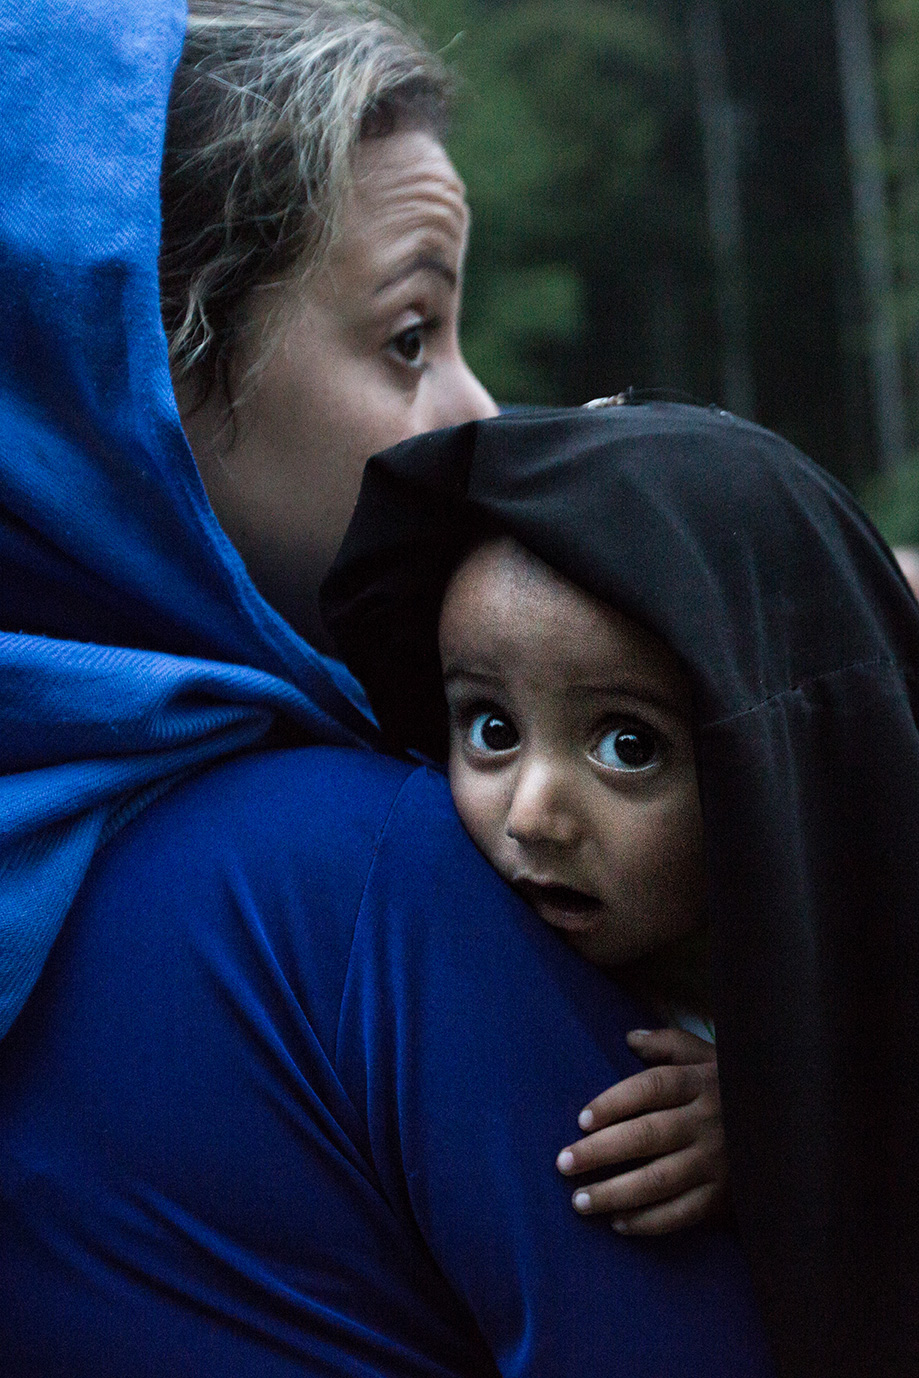 10_mother-child-syria-end-flight-arriving-Germany